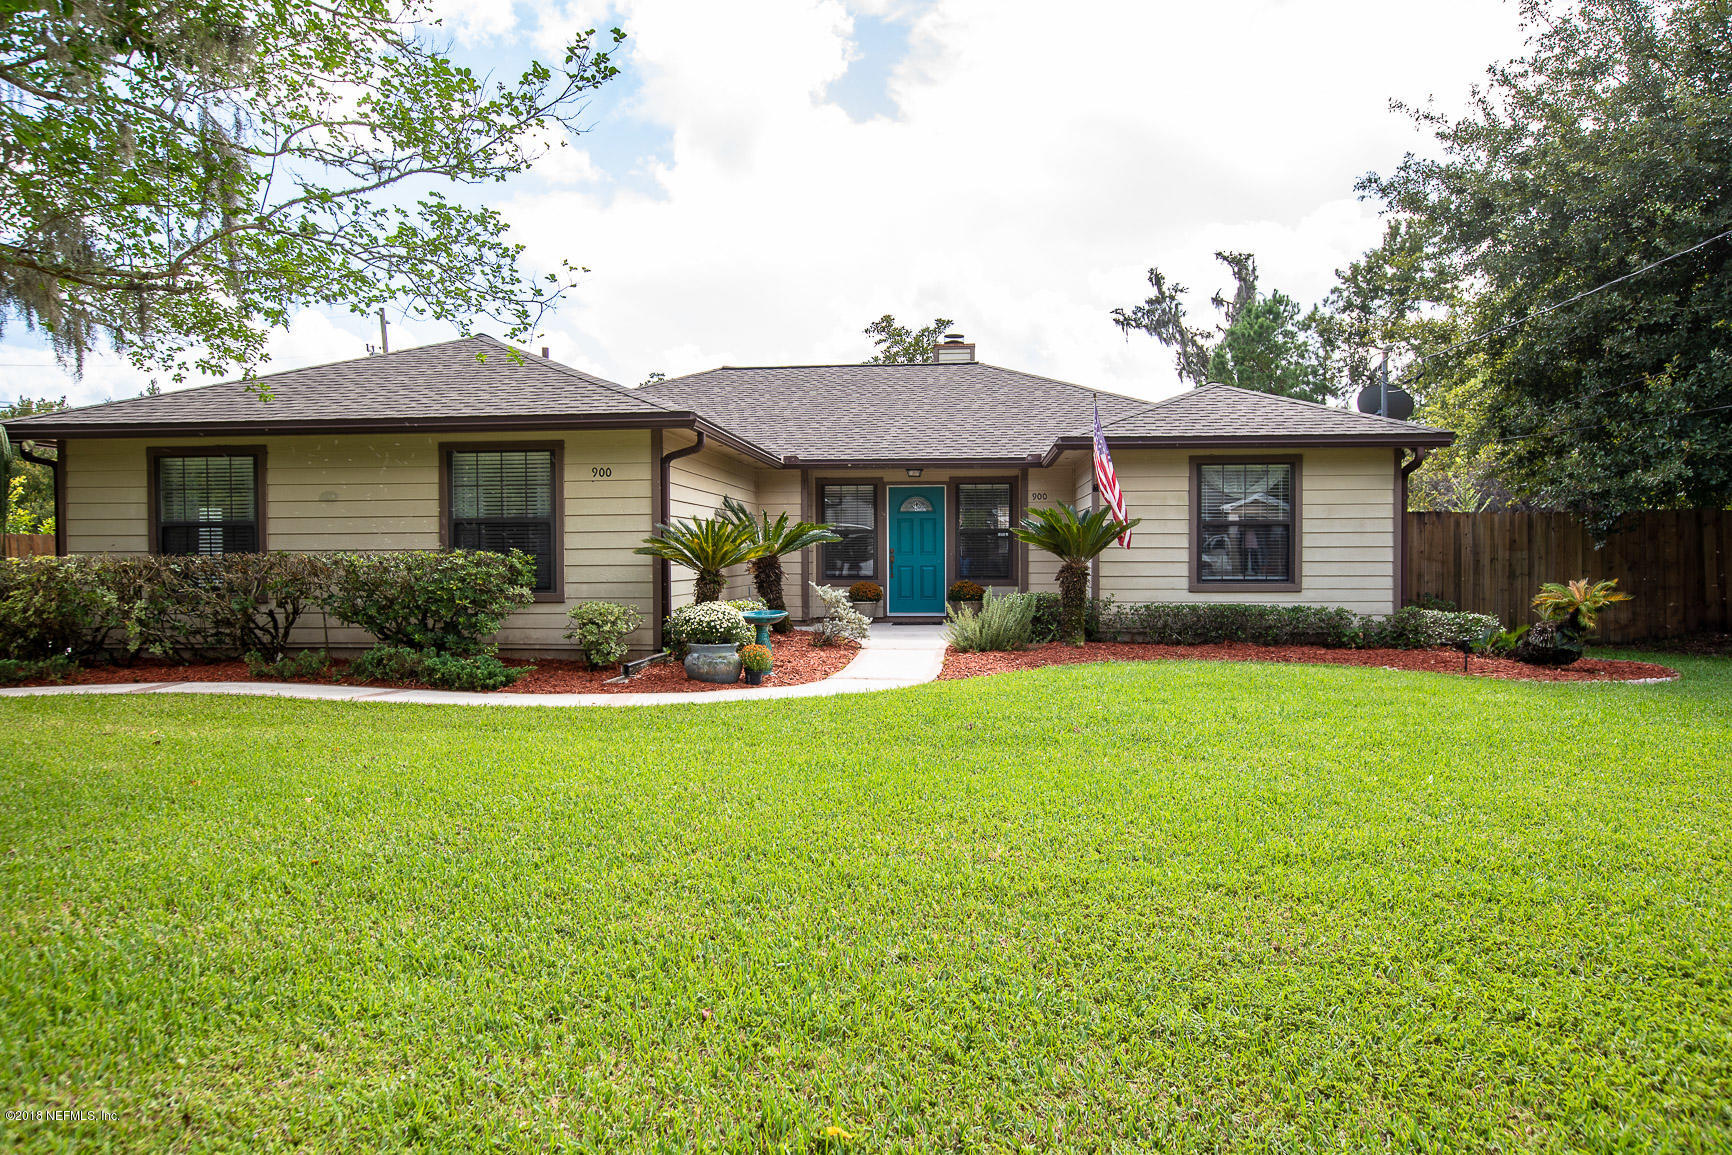 900 FLOYD, FLEMING ISLAND, FLORIDA 32003, 3 Bedrooms Bedrooms, ,2 BathroomsBathrooms,Residential - single family,For sale,FLOYD,959233